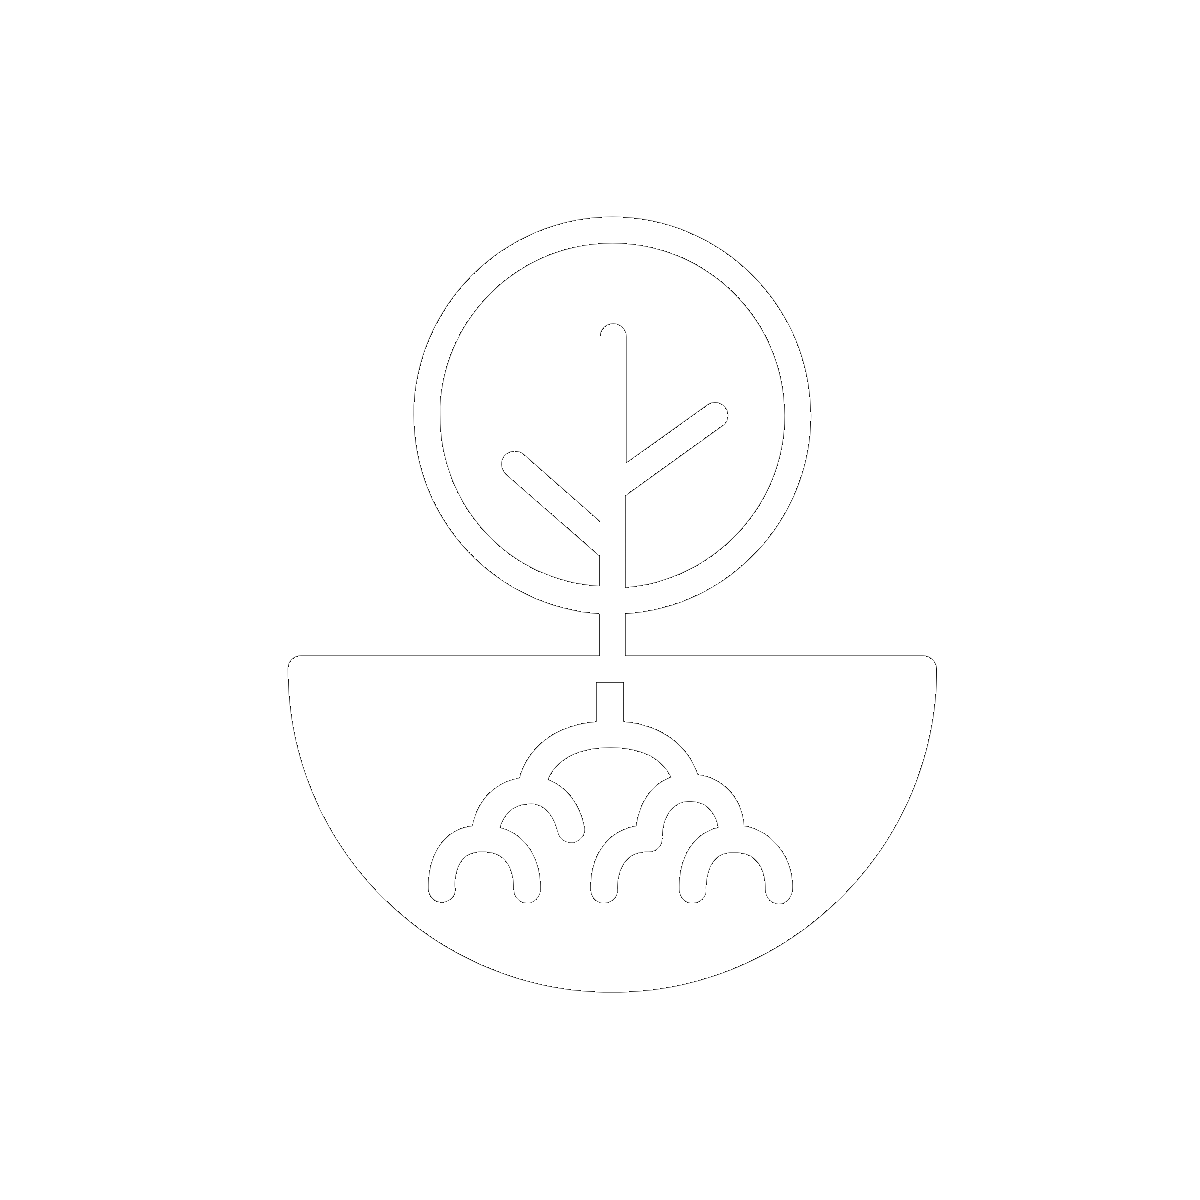 Symbol Planting and Roots